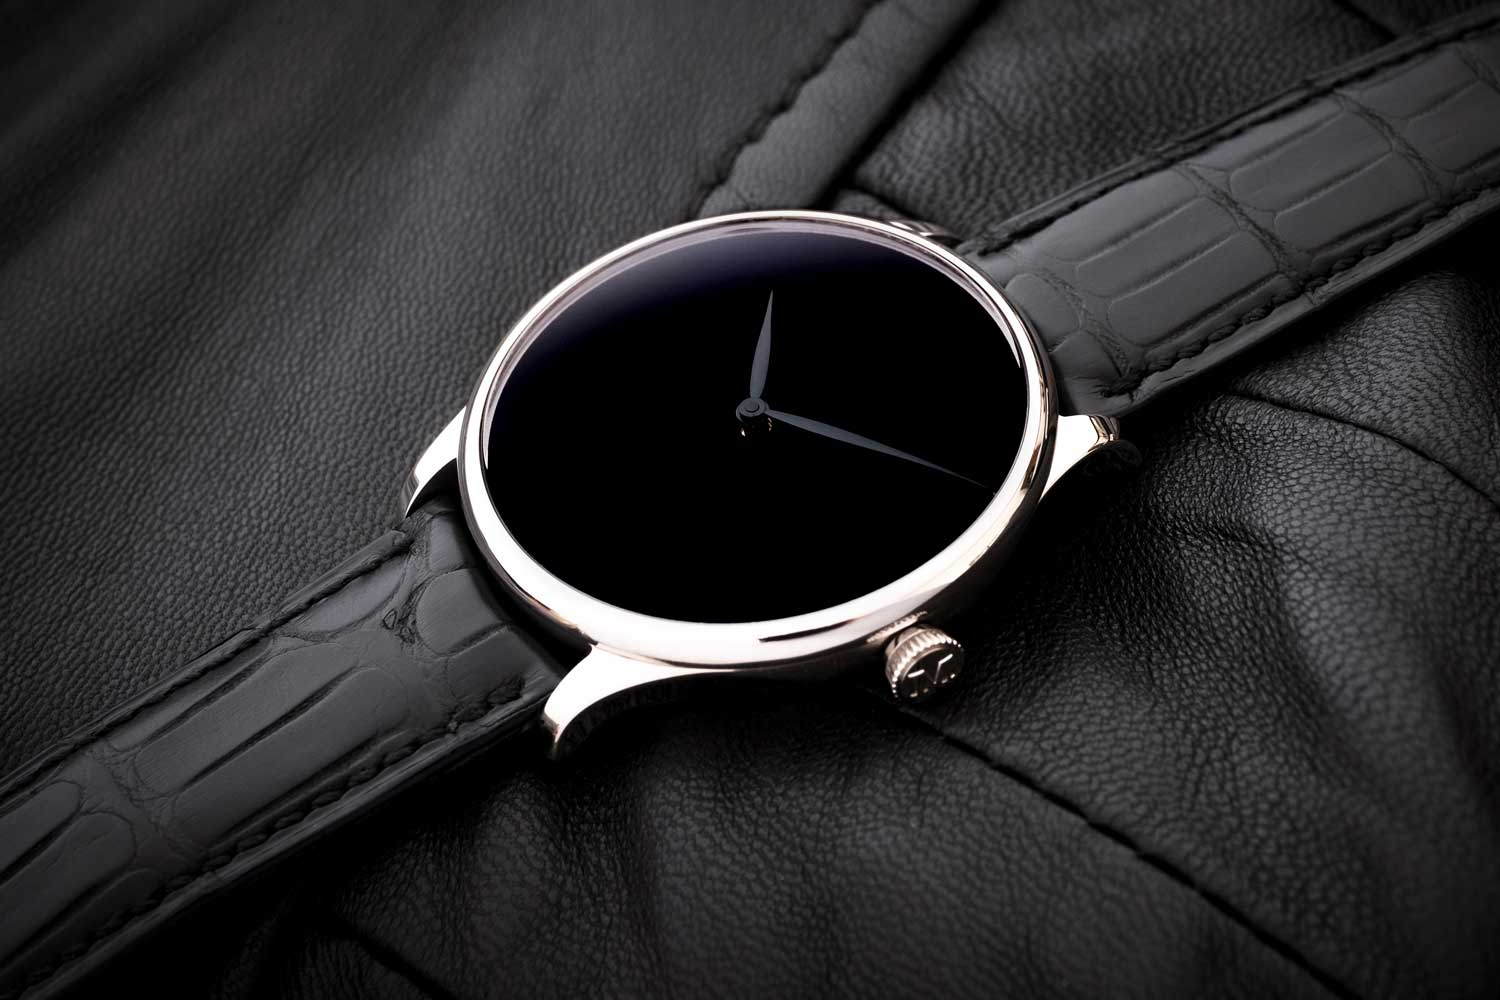 The absolute pitch black of the Vantablack dial shows against its other black watch components.